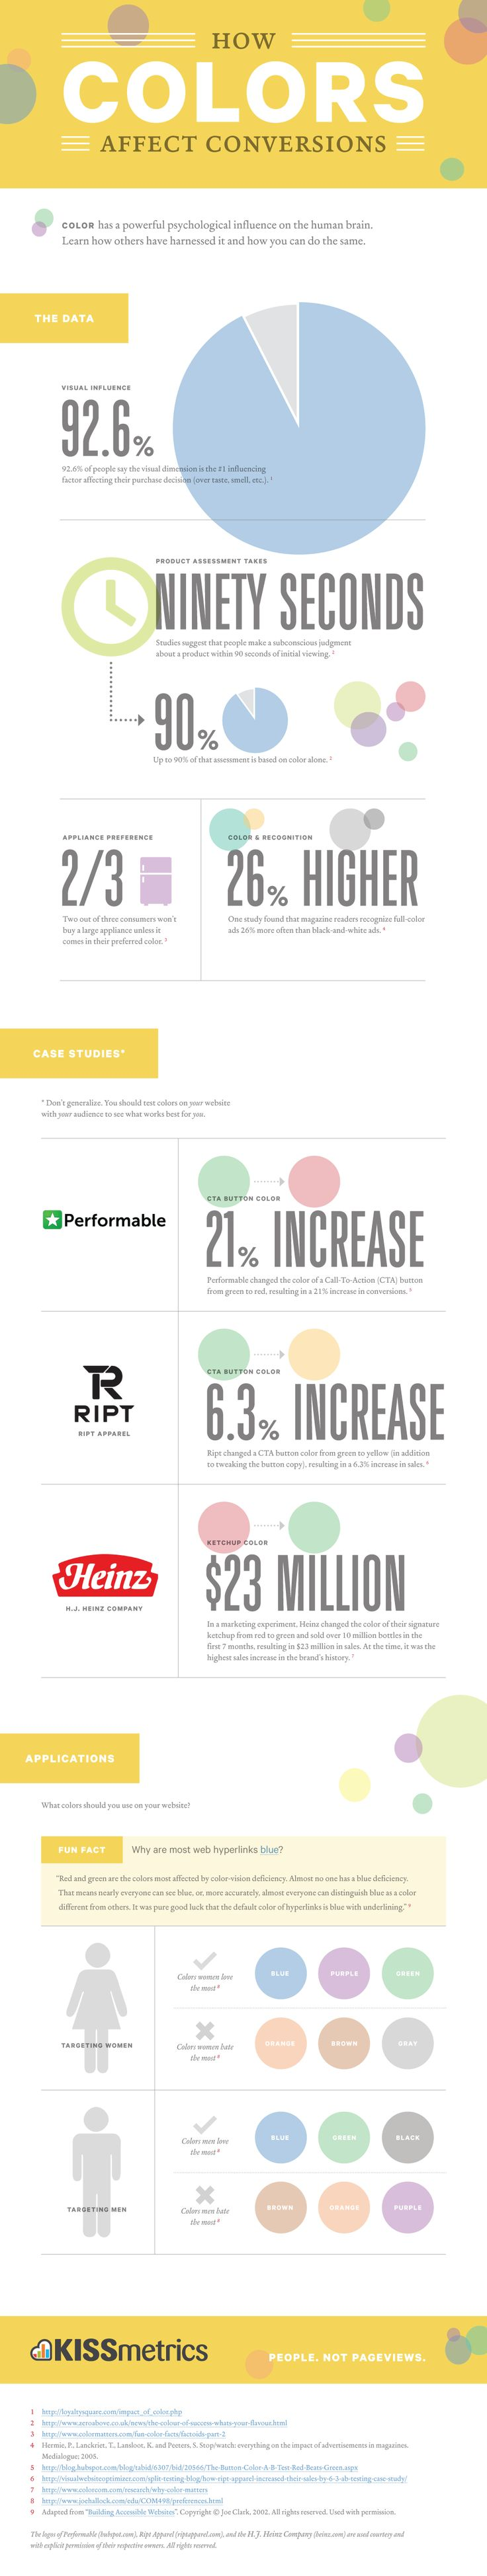 Infographic: How Colors Affect Conversions